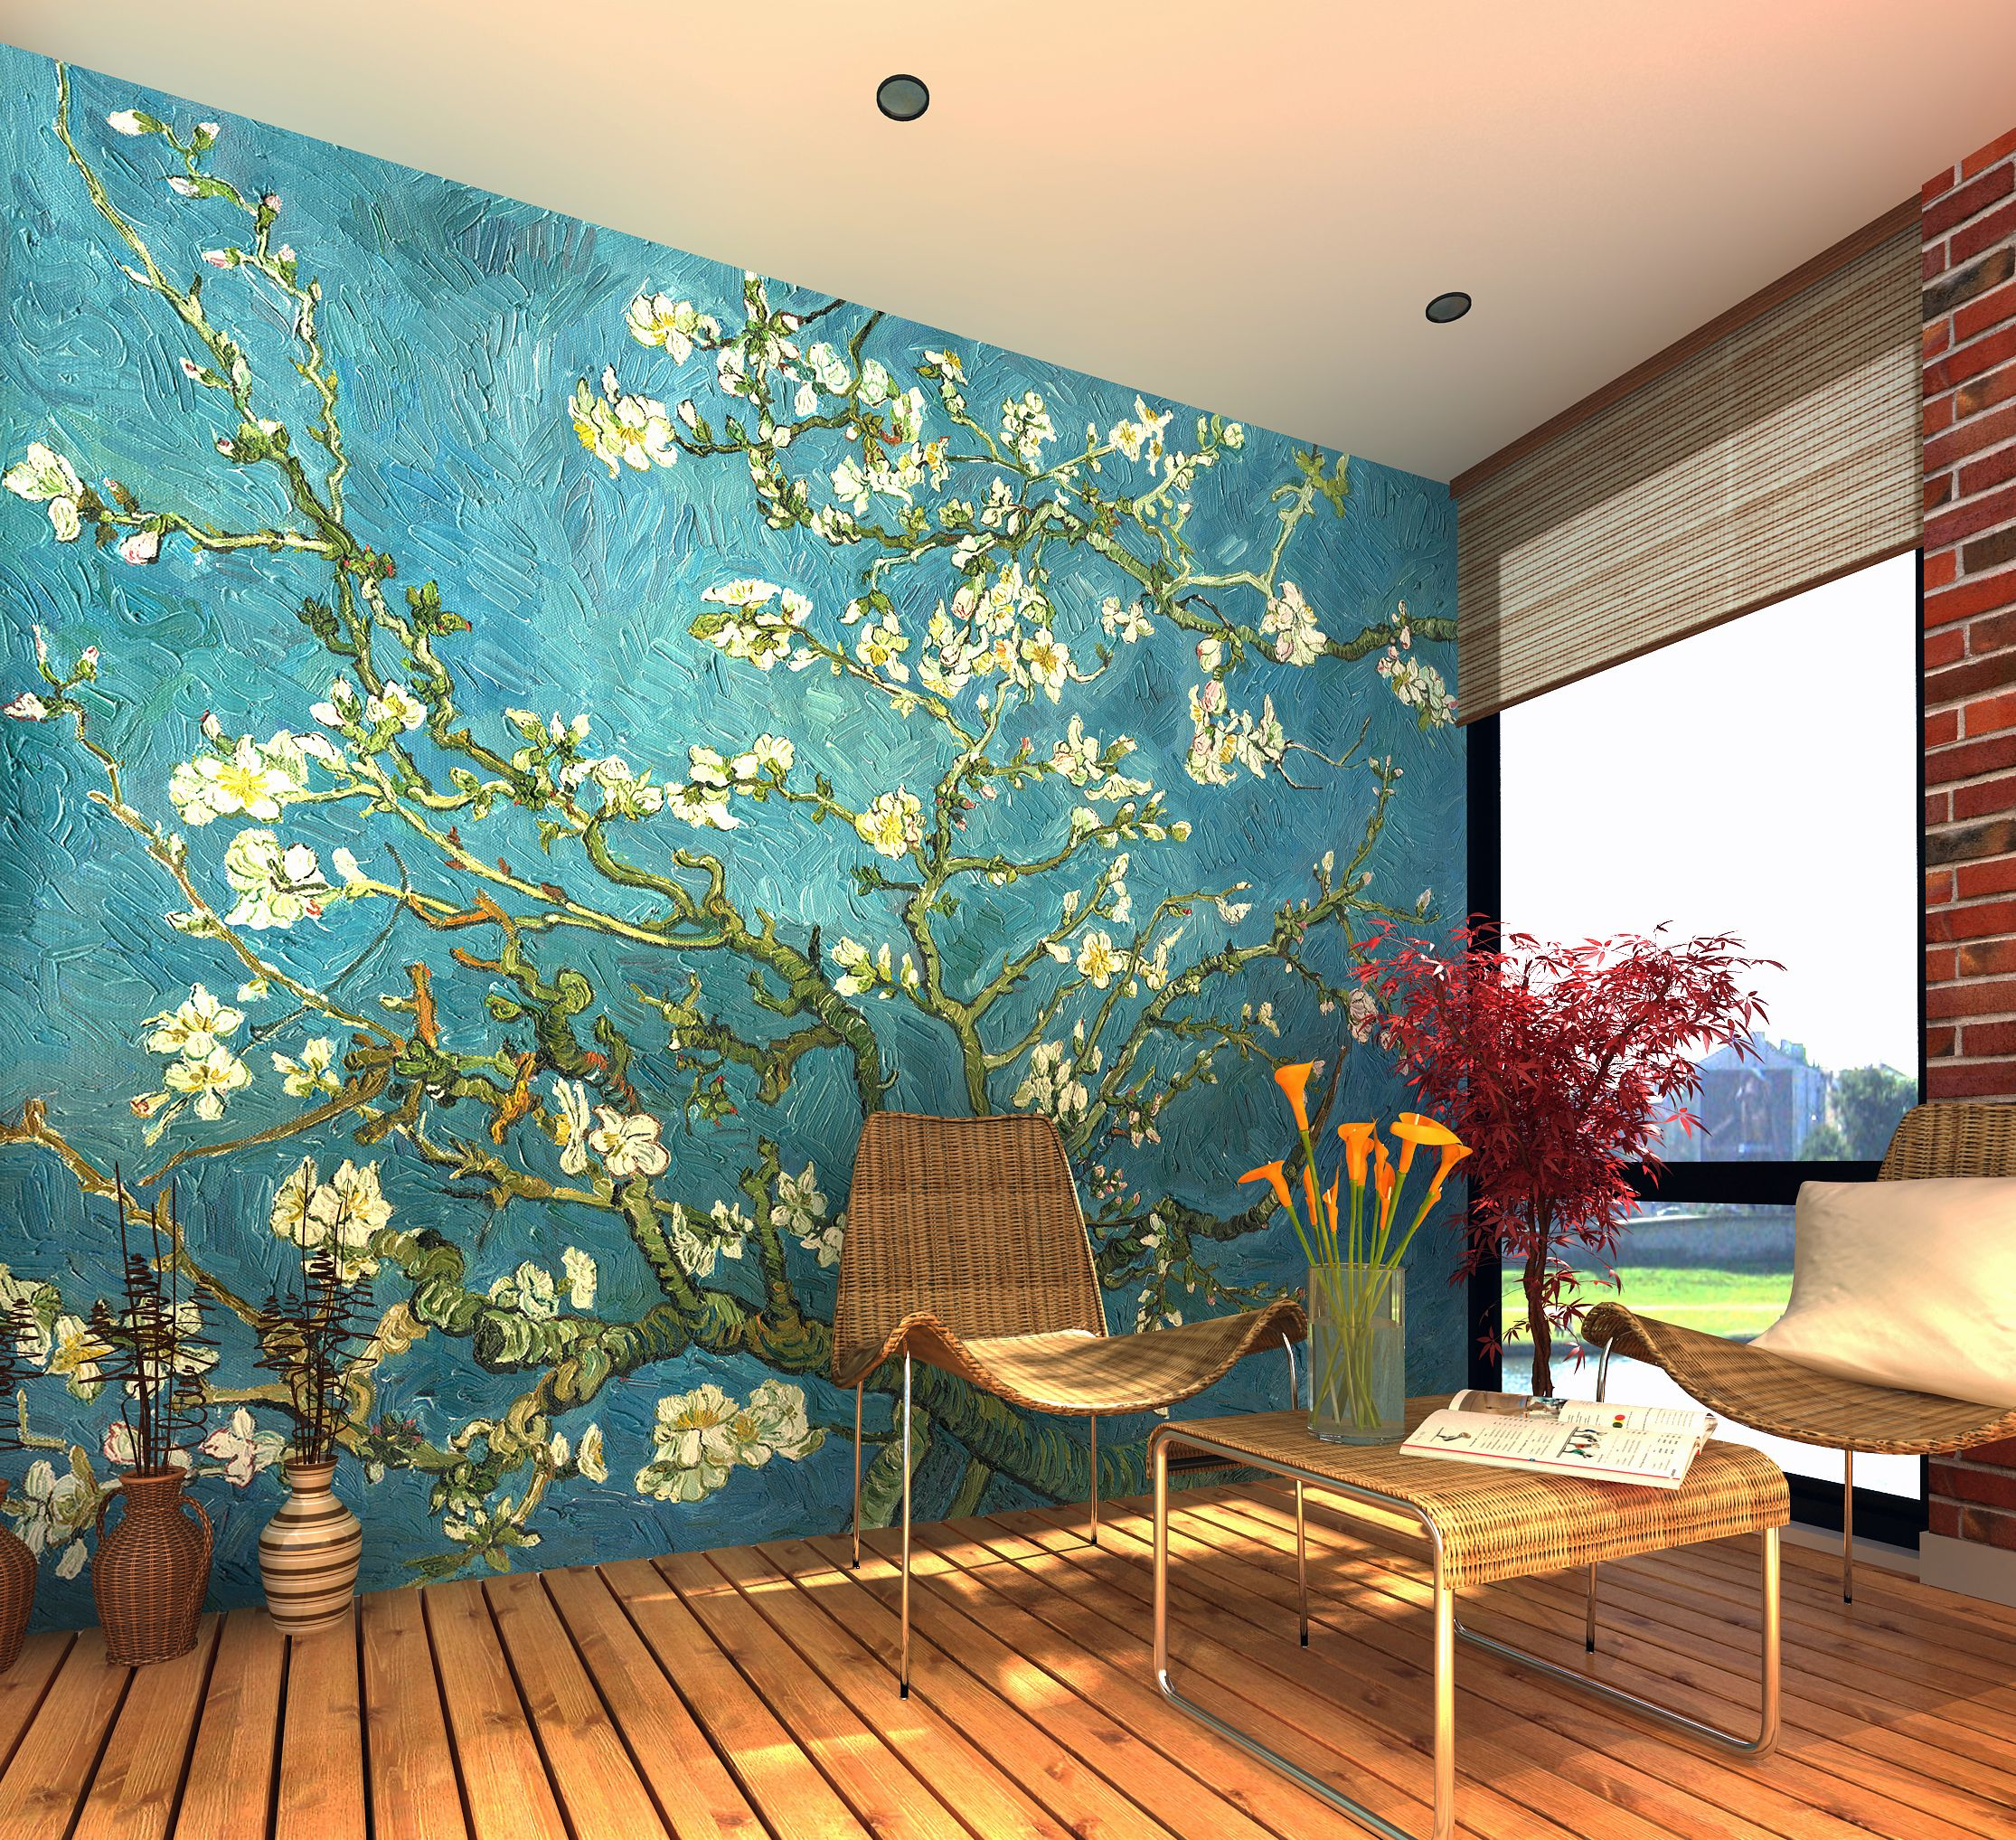 van gogh almond blossom wall mural wallpaper photowall home decor fototapet stuff to. Black Bedroom Furniture Sets. Home Design Ideas